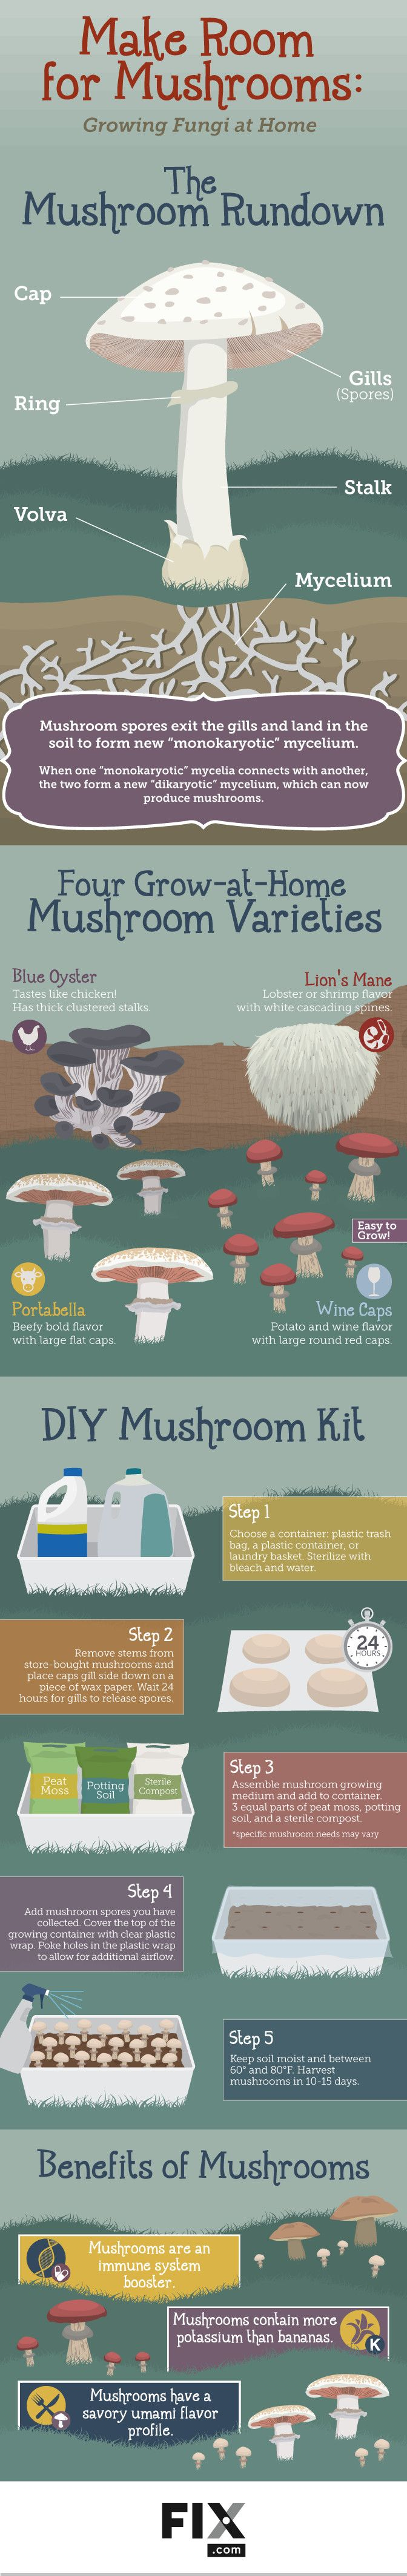 Make room for mushrooms!